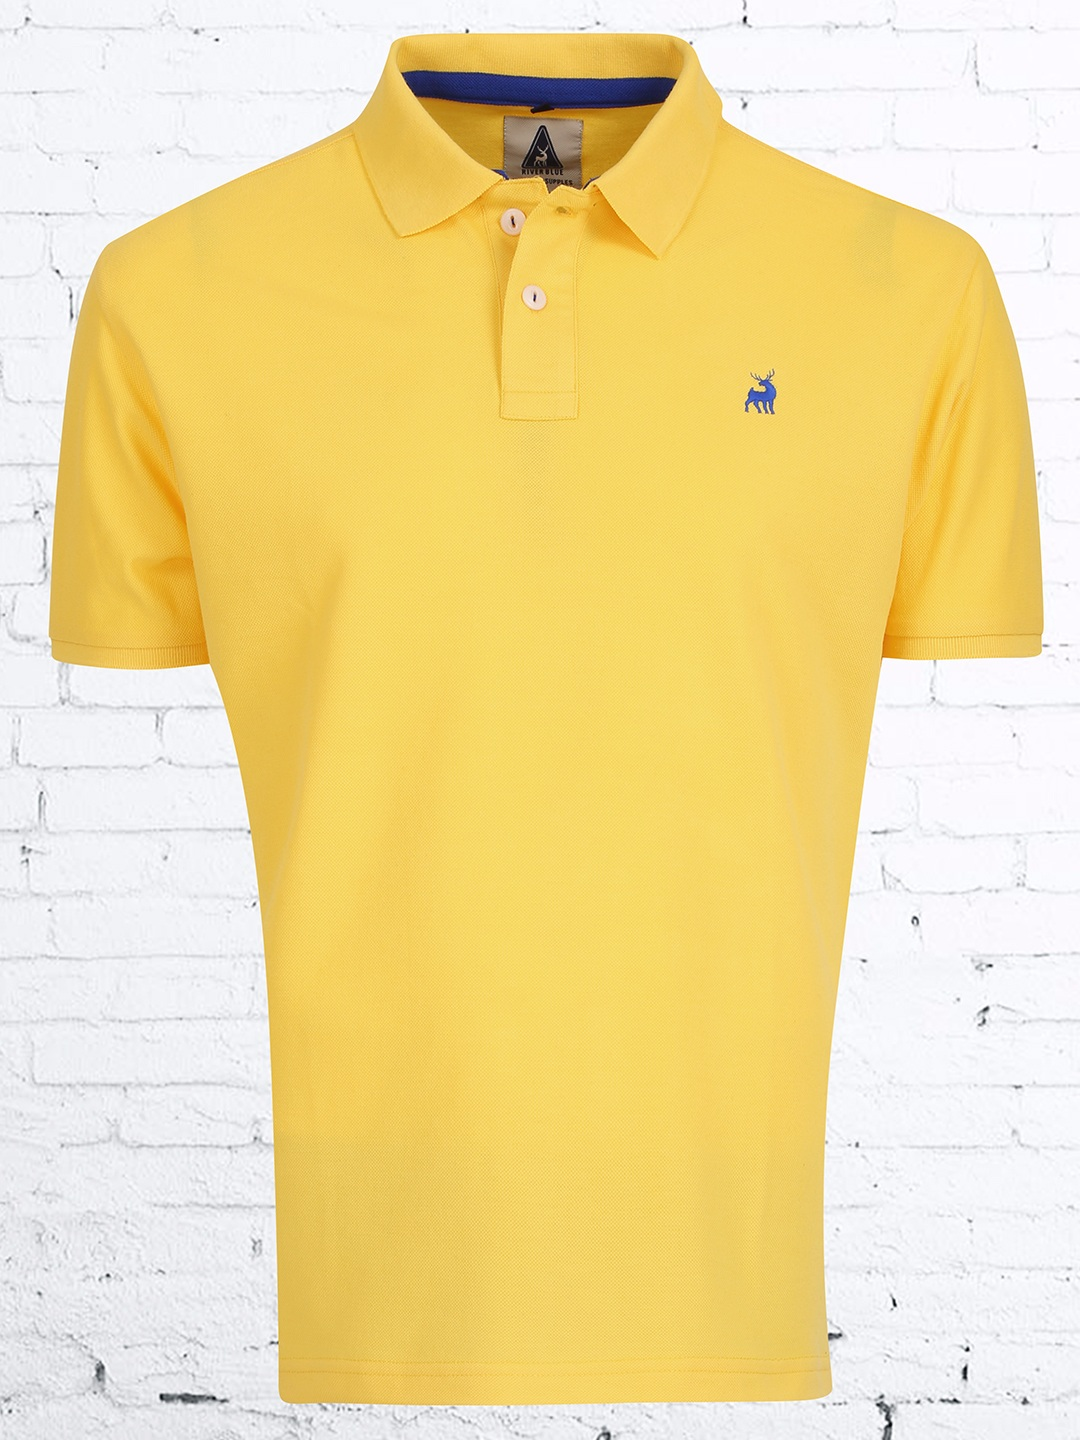 River blue yellow slim fit cotton t shirt g3 mts4606 for Slim fit cotton shirts